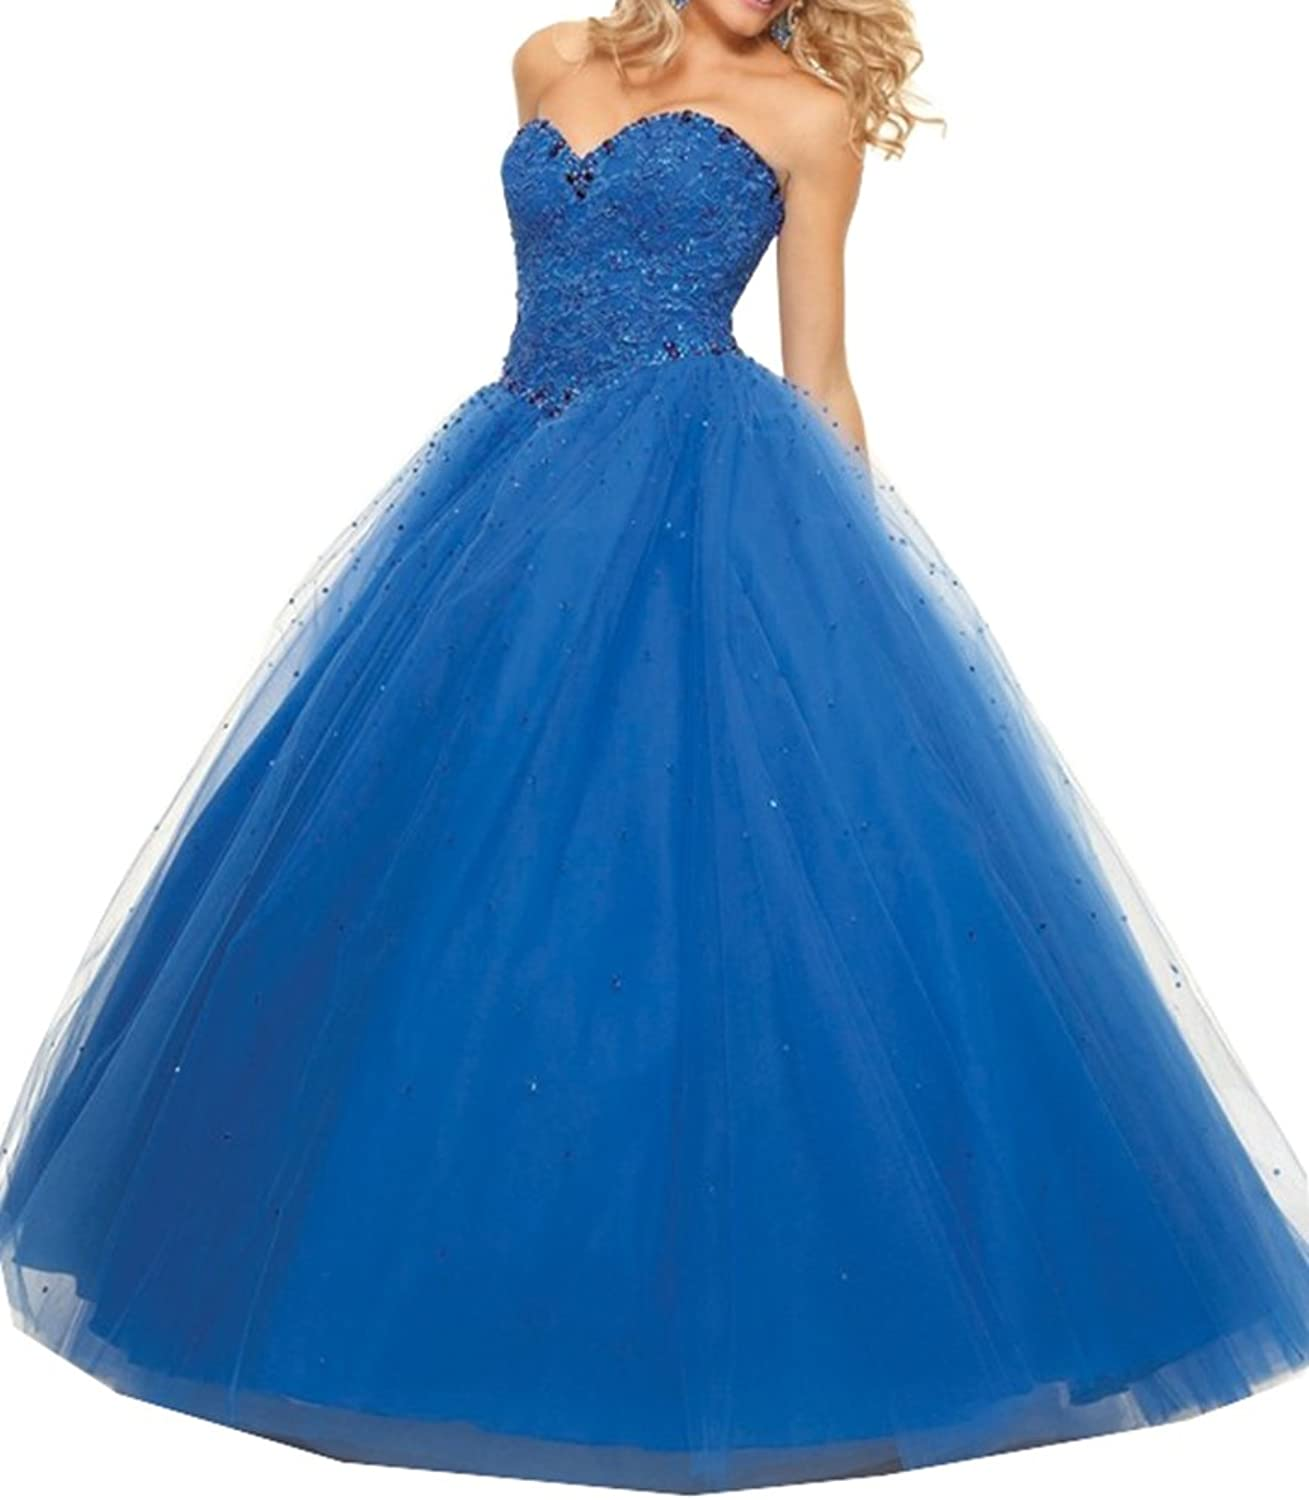 Lavaring Women's Tulle Backless Laceup Sweetheart Beaded Long Ball Gown